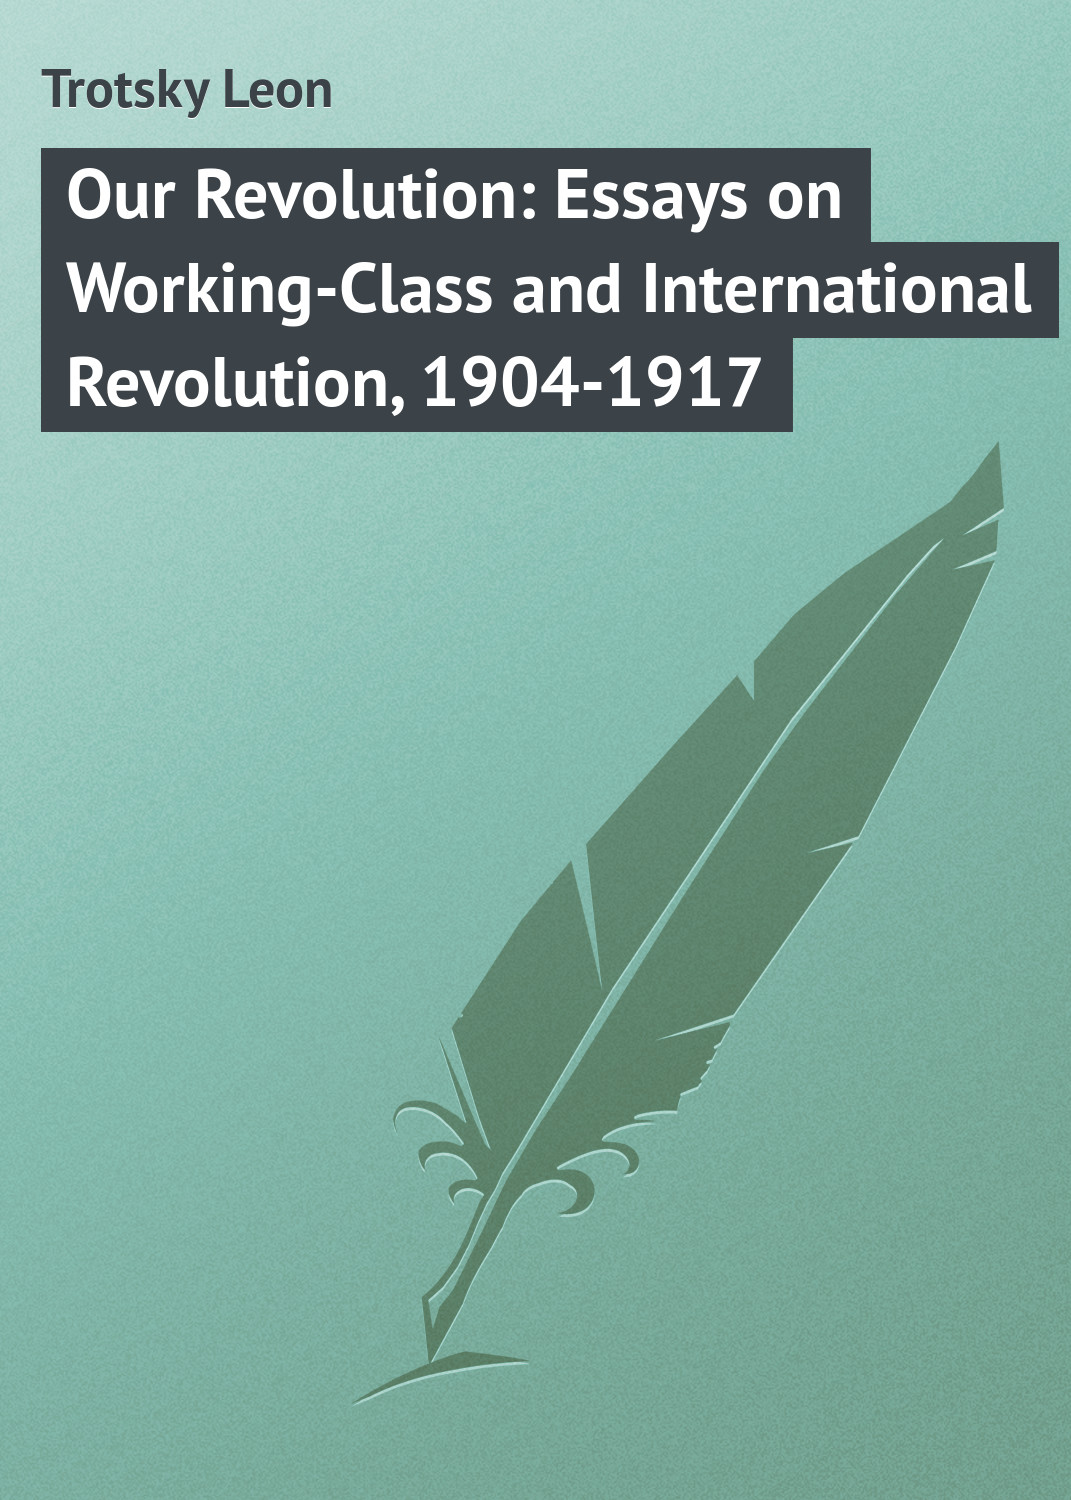 Trotsky Leon Our Revolution: Essays on Working-Class and International Revolution, 1904-1917 куртка revolution class 7244 grey 2xl